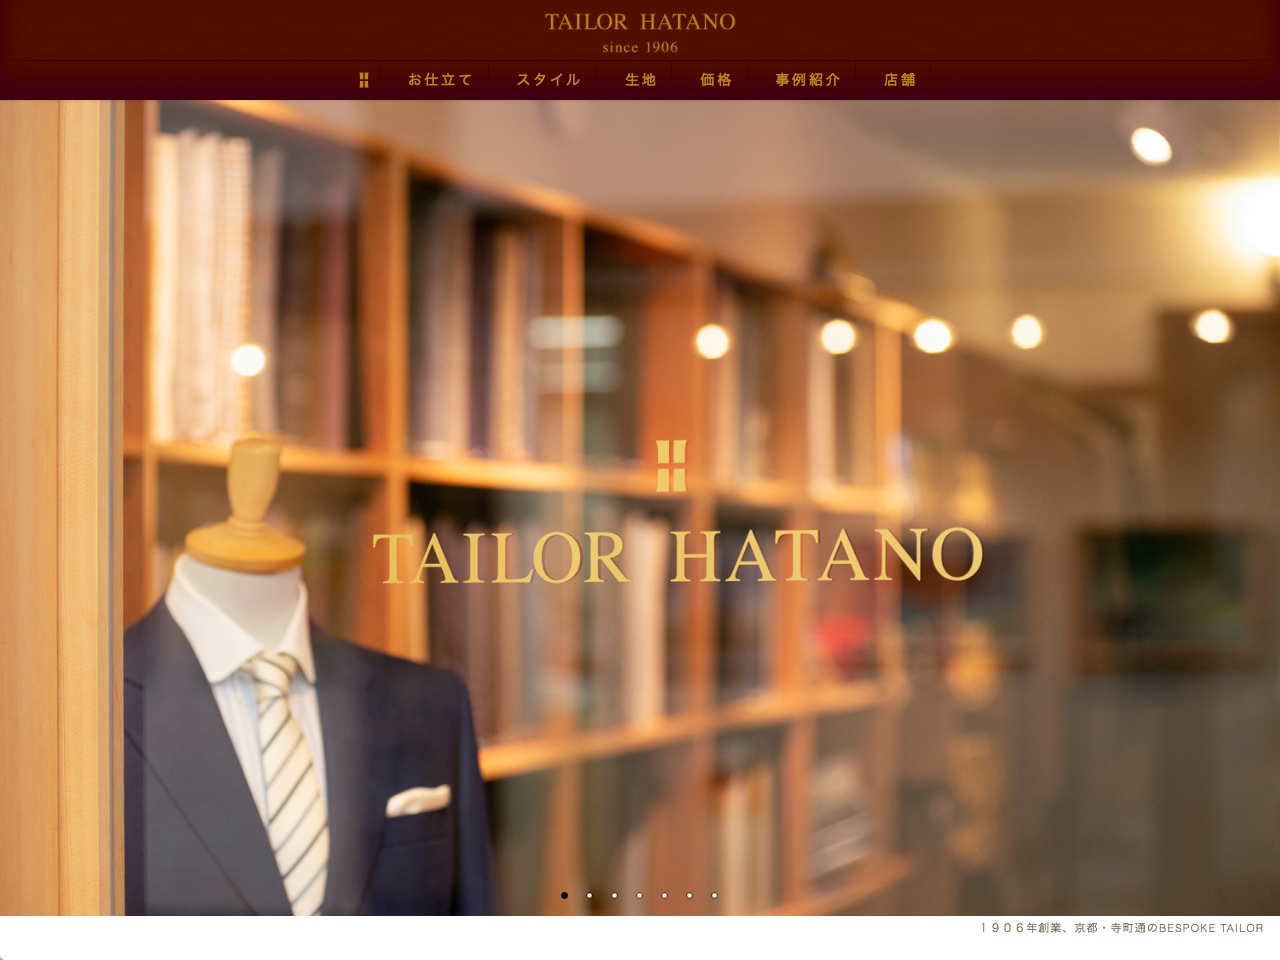 TAILOR HATANO website